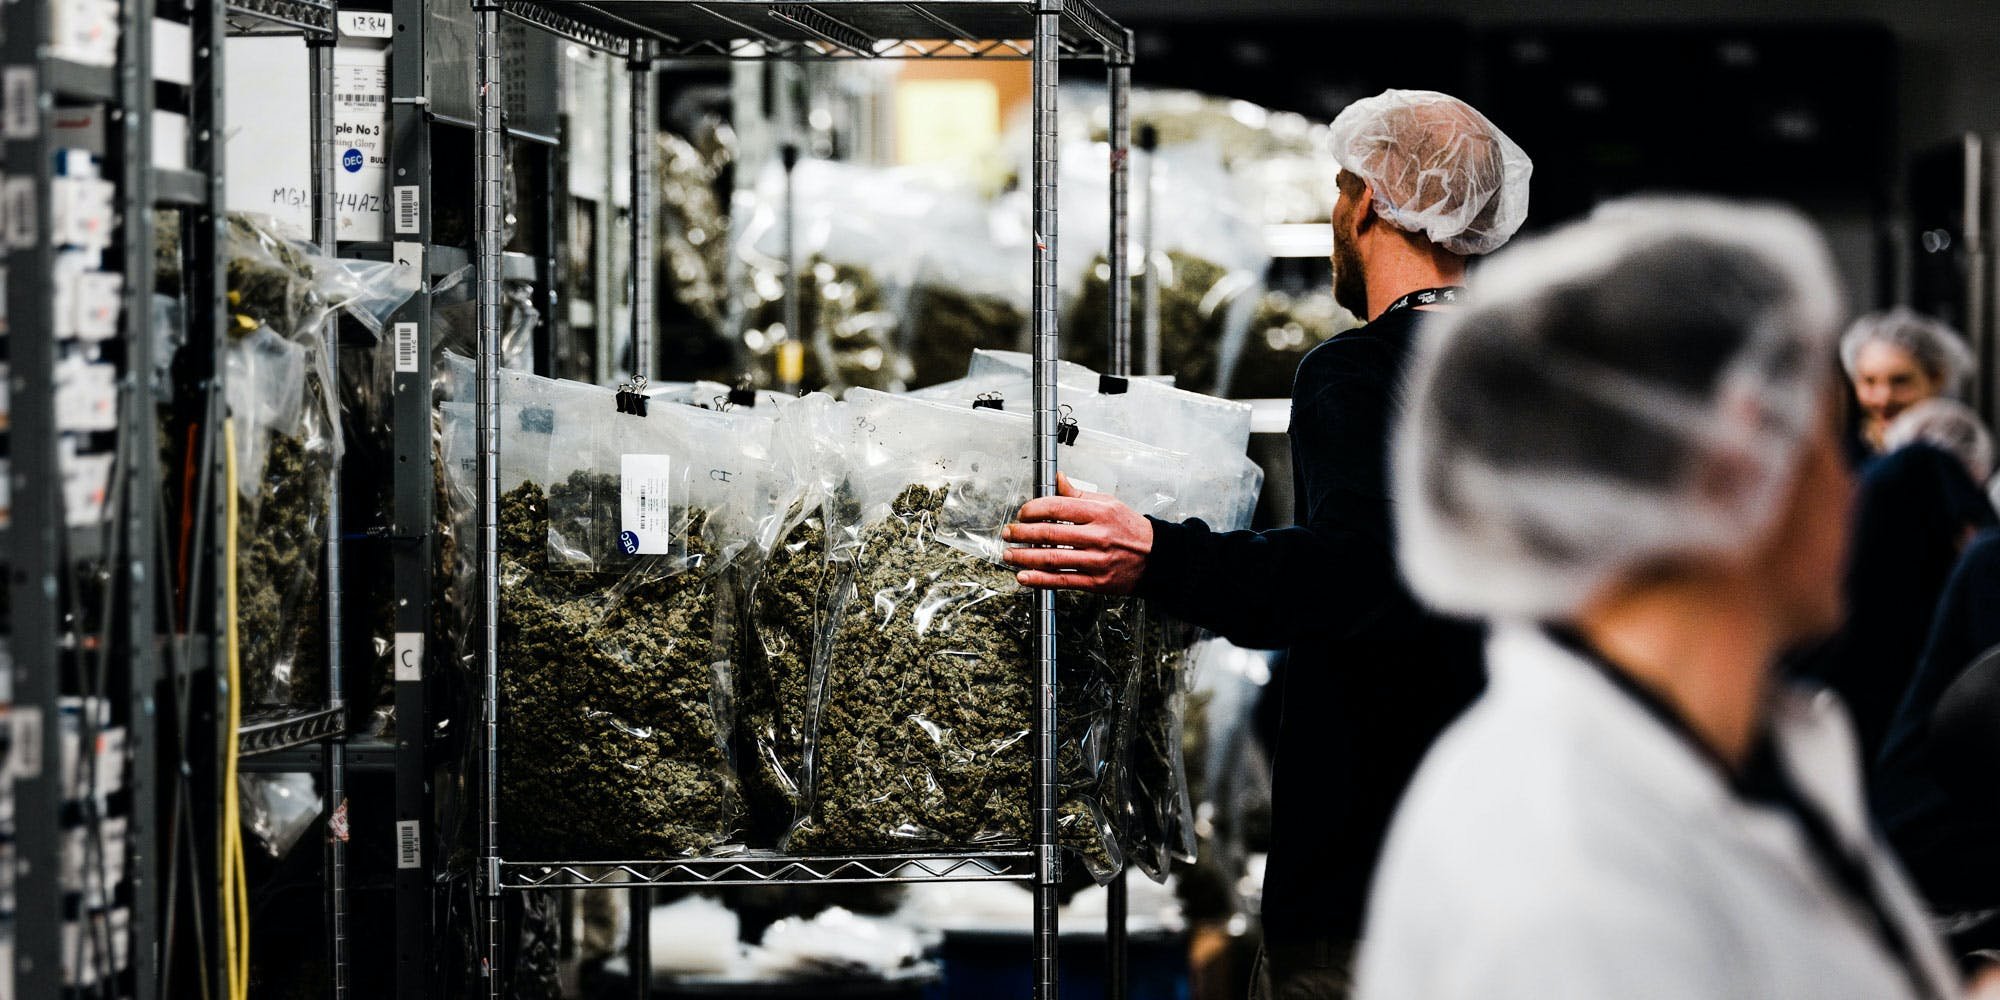 Employees at Tweed, a legal licensed producer in Ontario, ready cannabis for sale. In legal states like Washington, there's stiff competition among growers. This has caused some of them to divert their legal cannabis across state lines